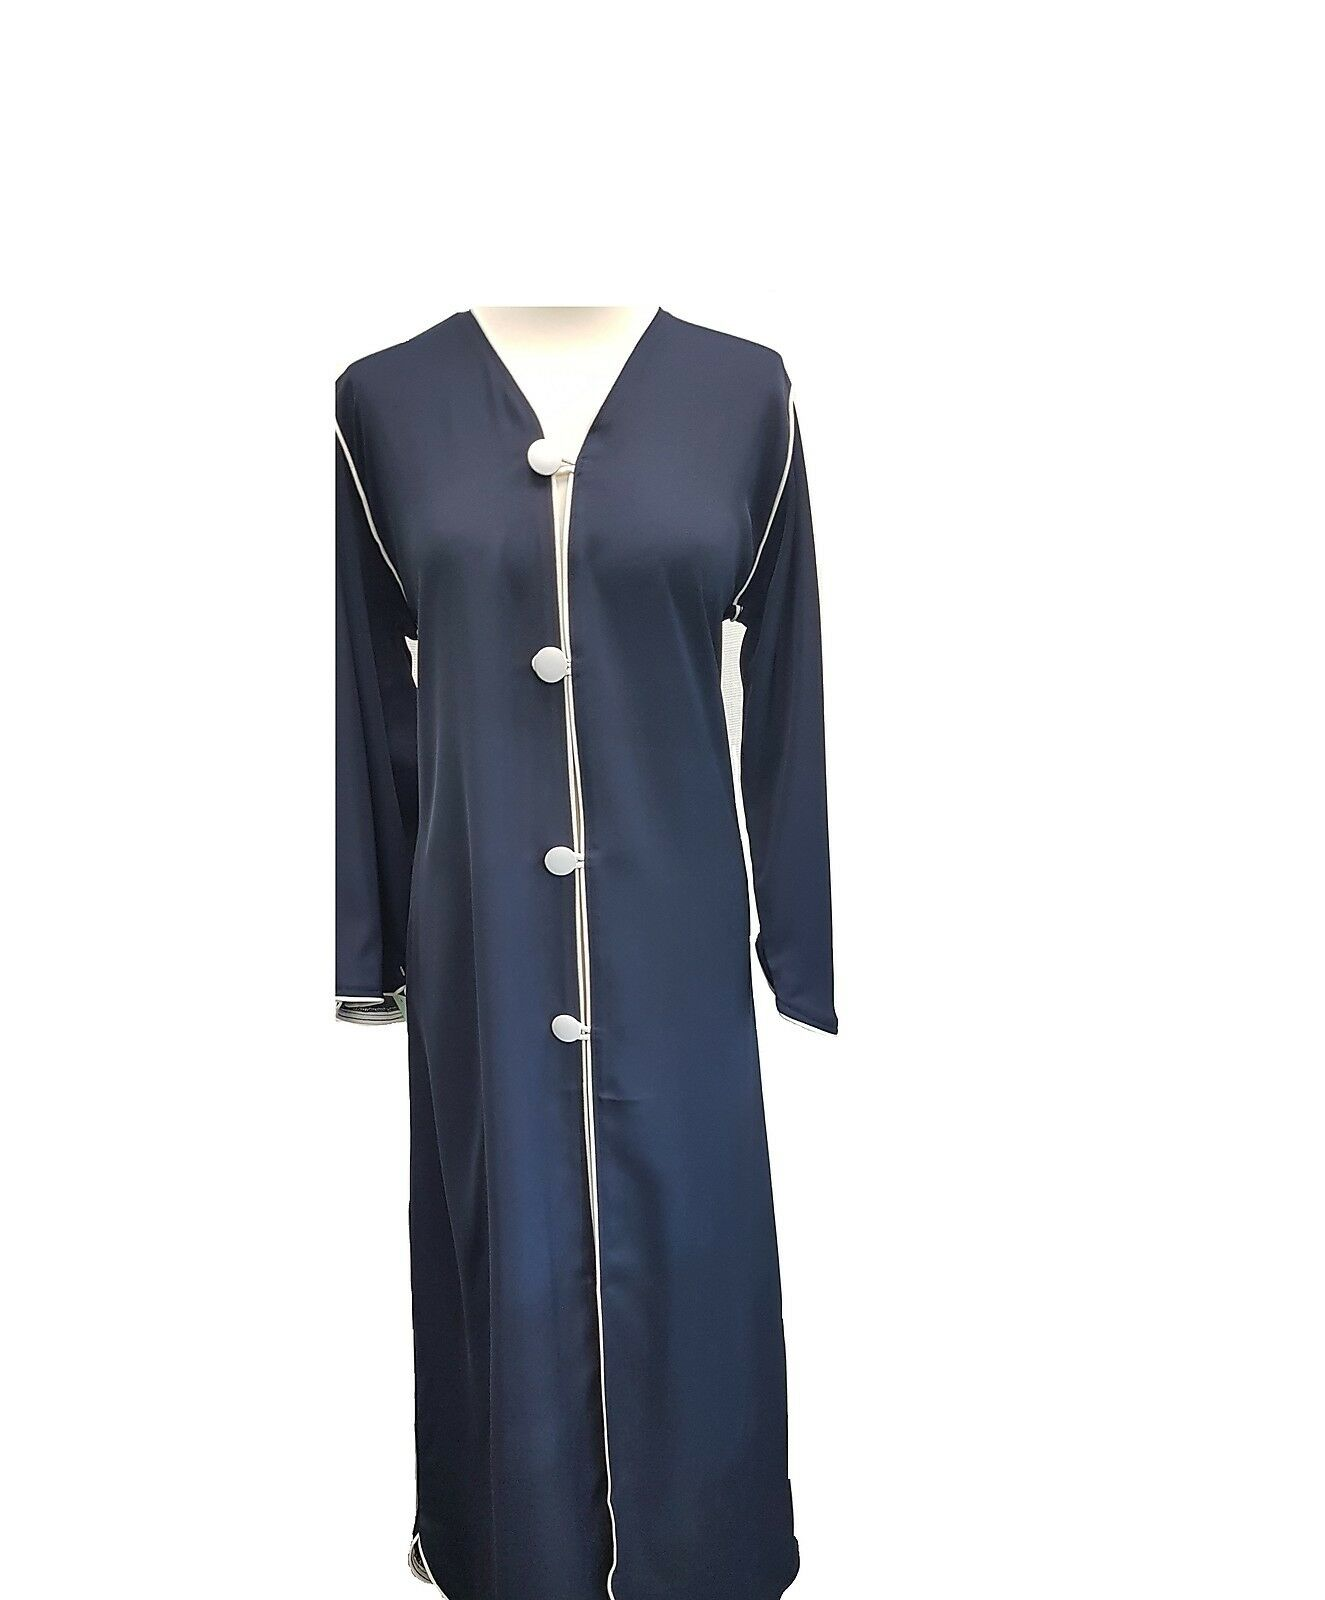 New Ladies Navy bluee A Shape Abaya with White Buttons  Lace on Edges Open Front